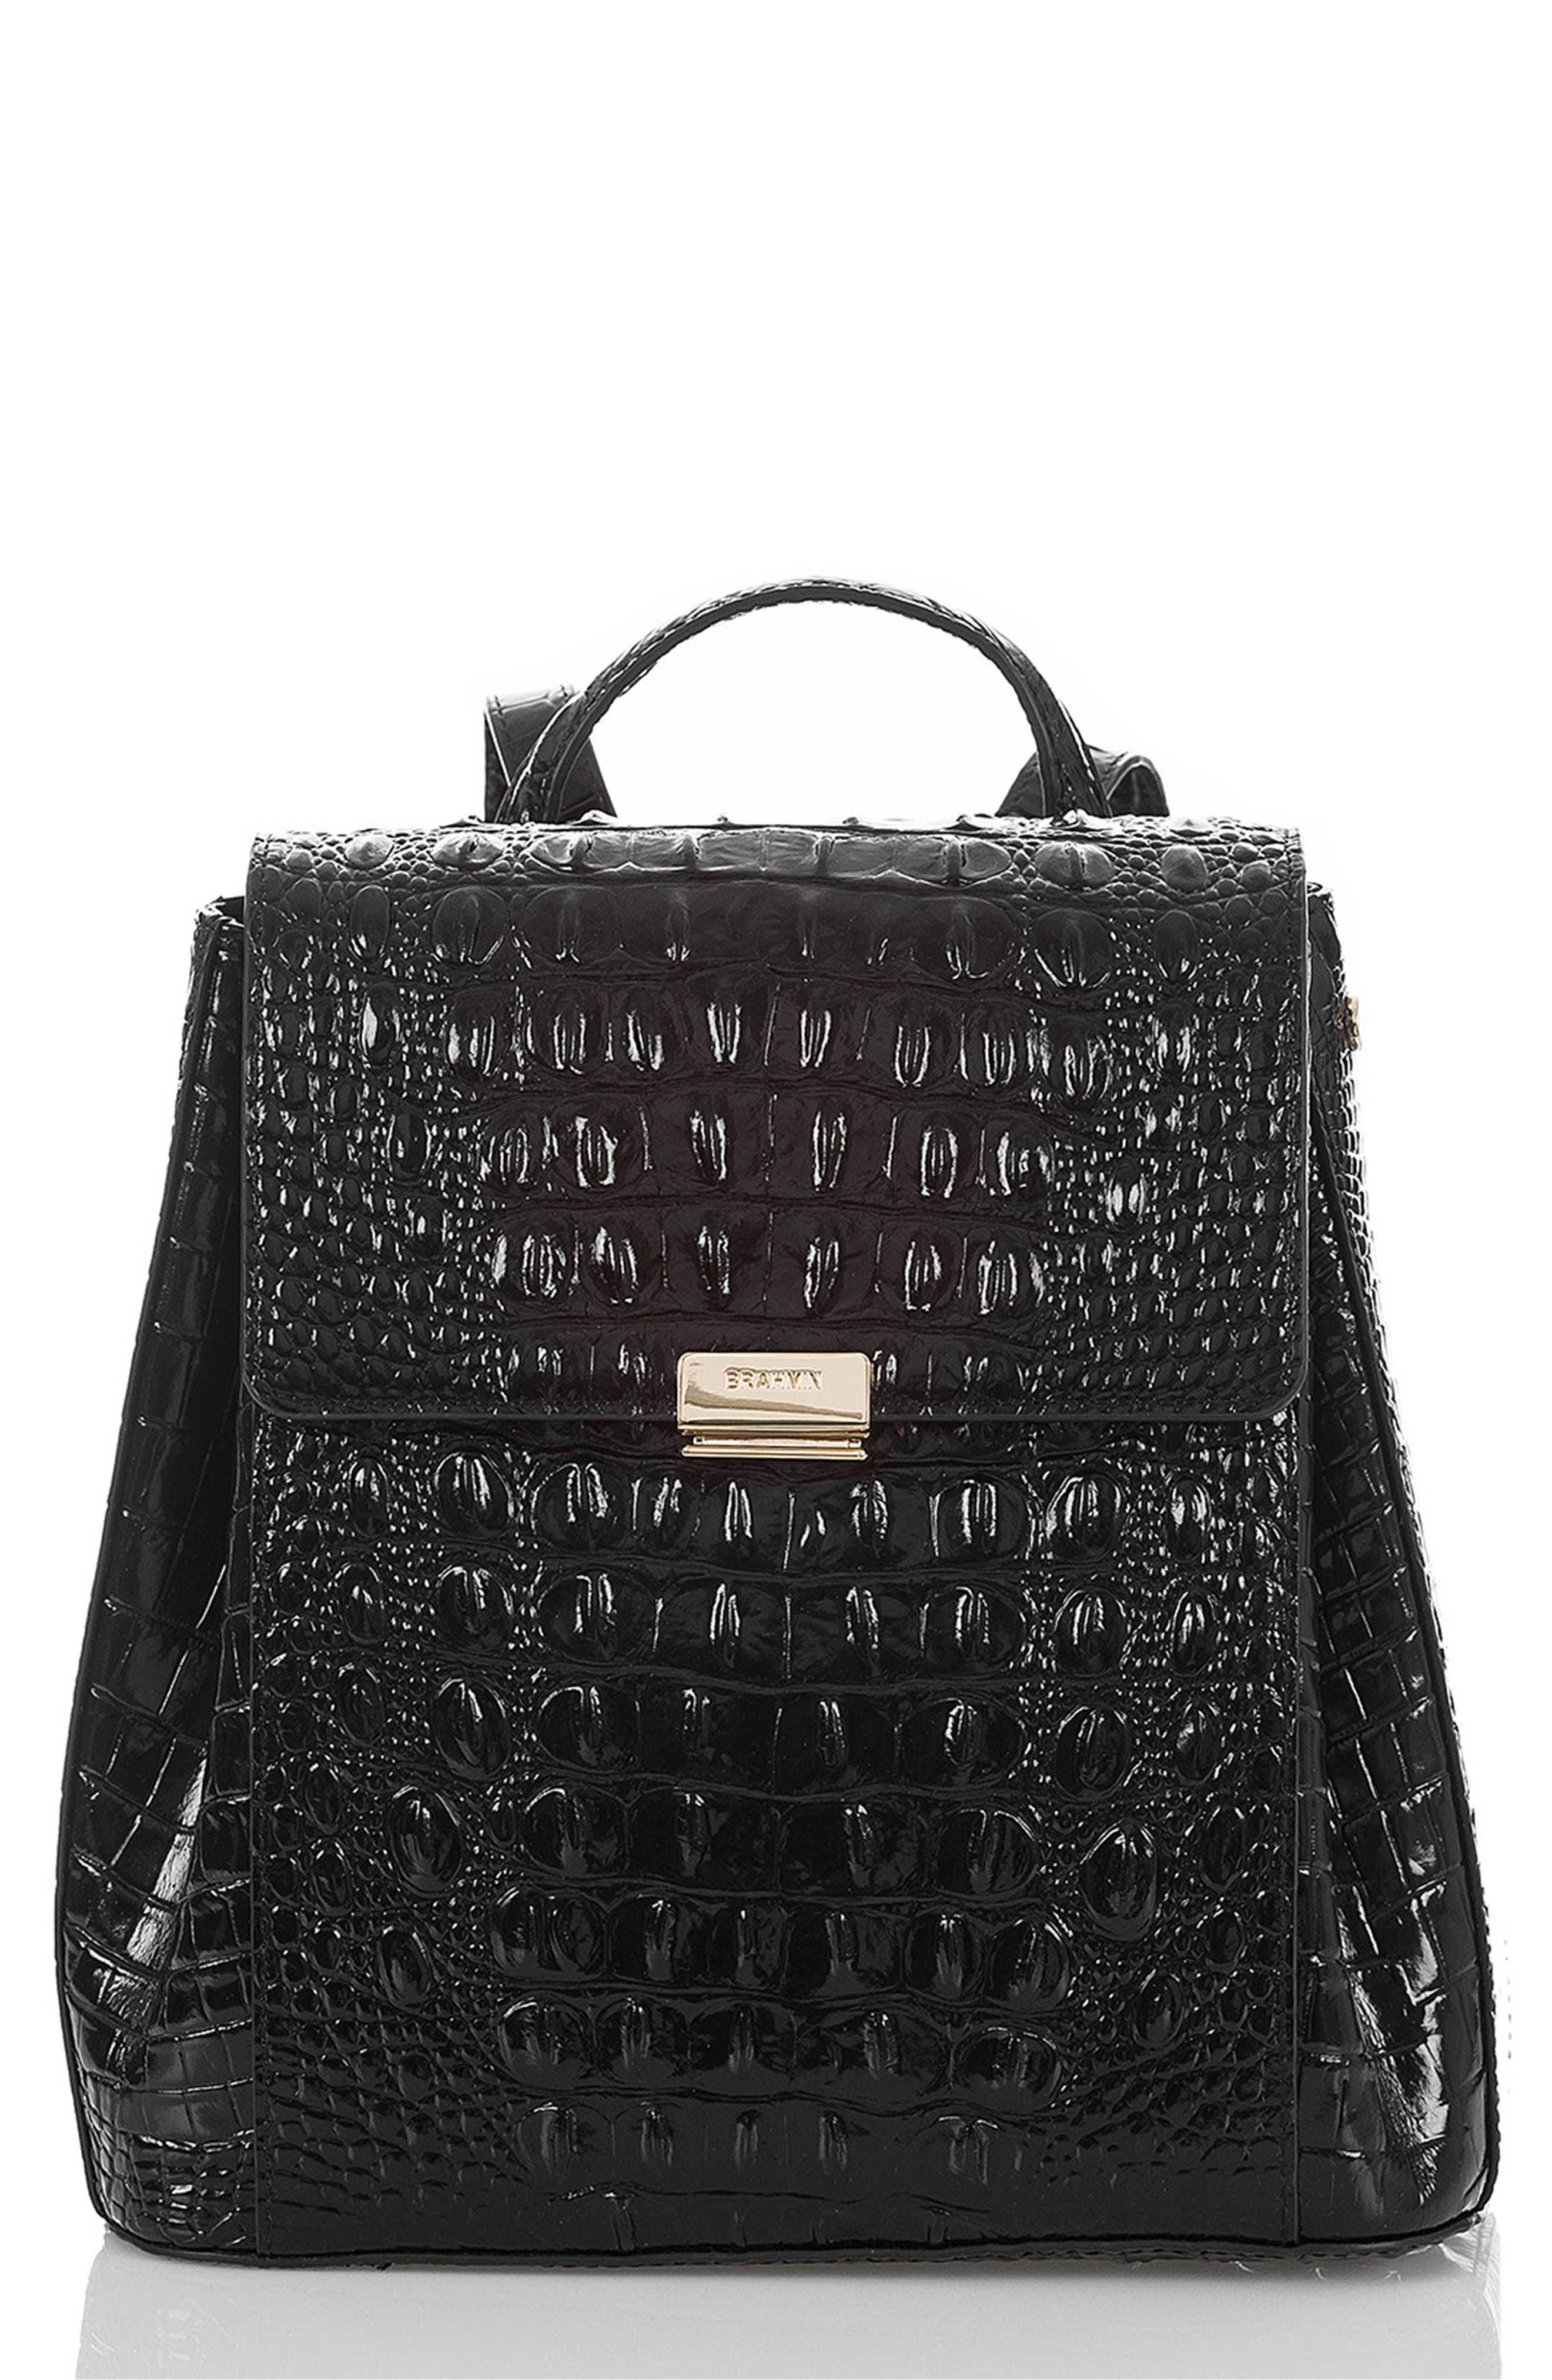 BRAHMIN Margo Croc Embossed Leather Backpack, Main, color, BLACK MELBOURNE